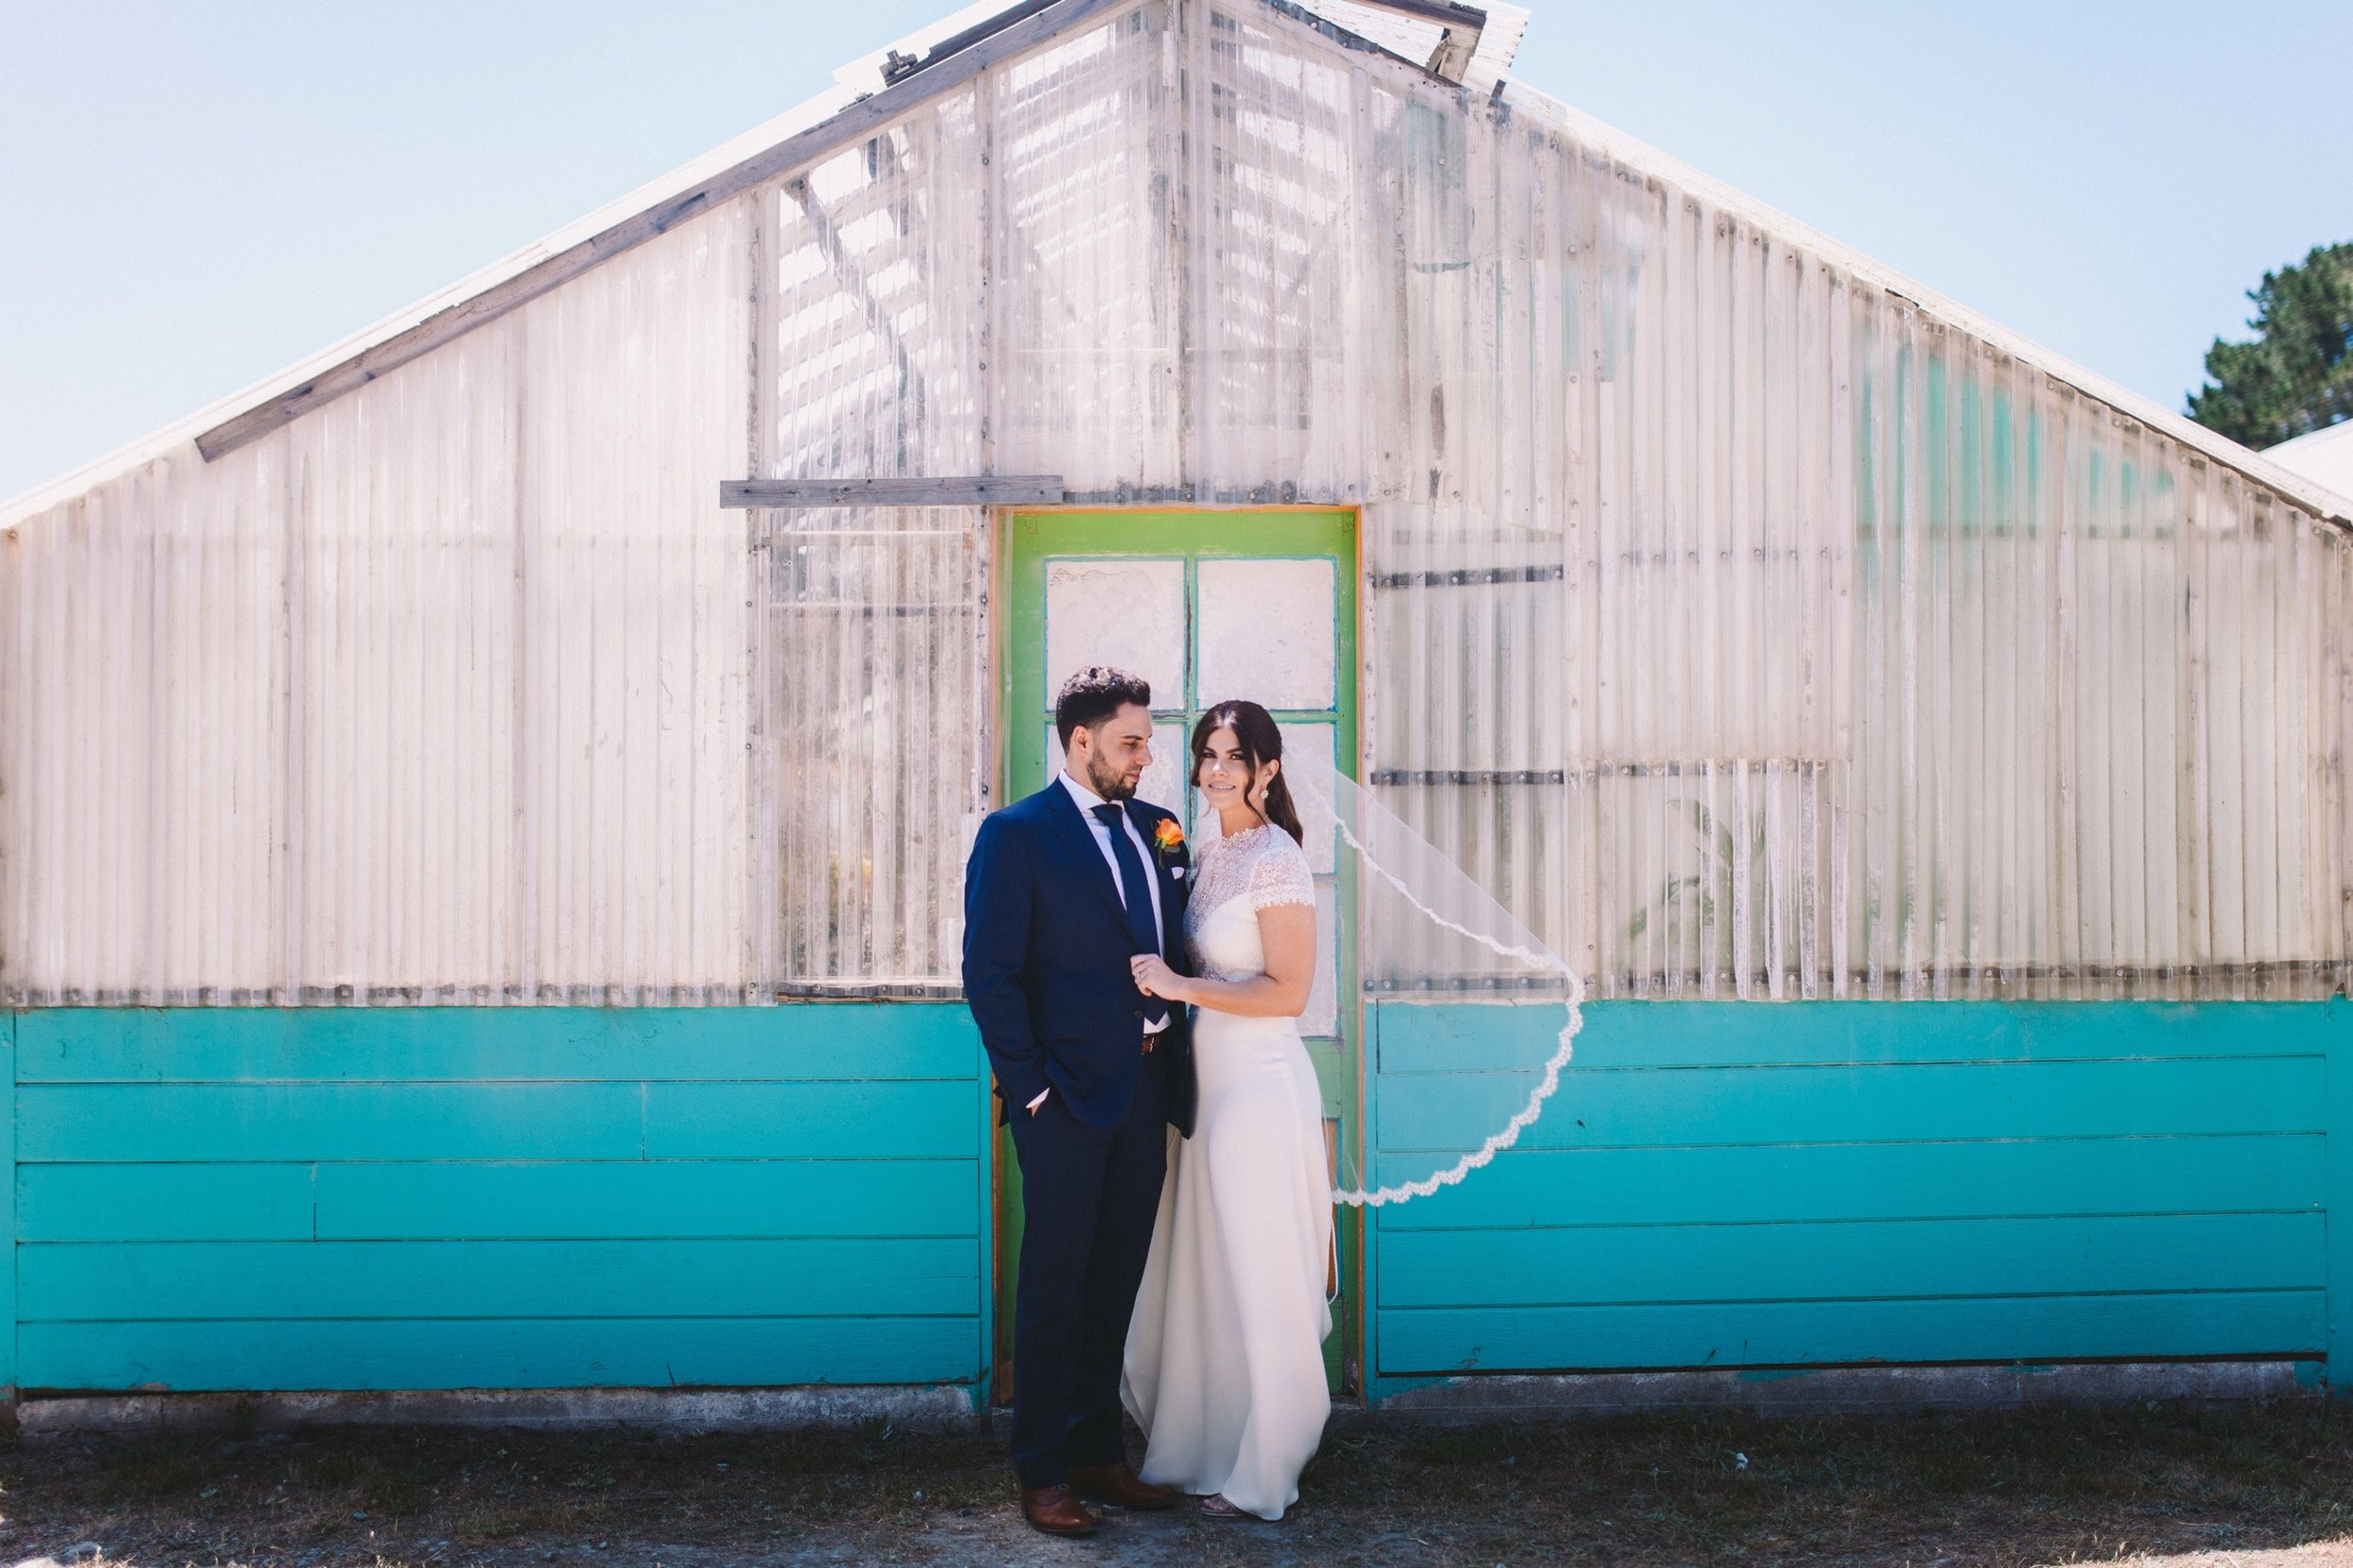 Bride & Groom Portrait in front of Brightly Painted Greenhouse at Shelldance Orchid Gardens